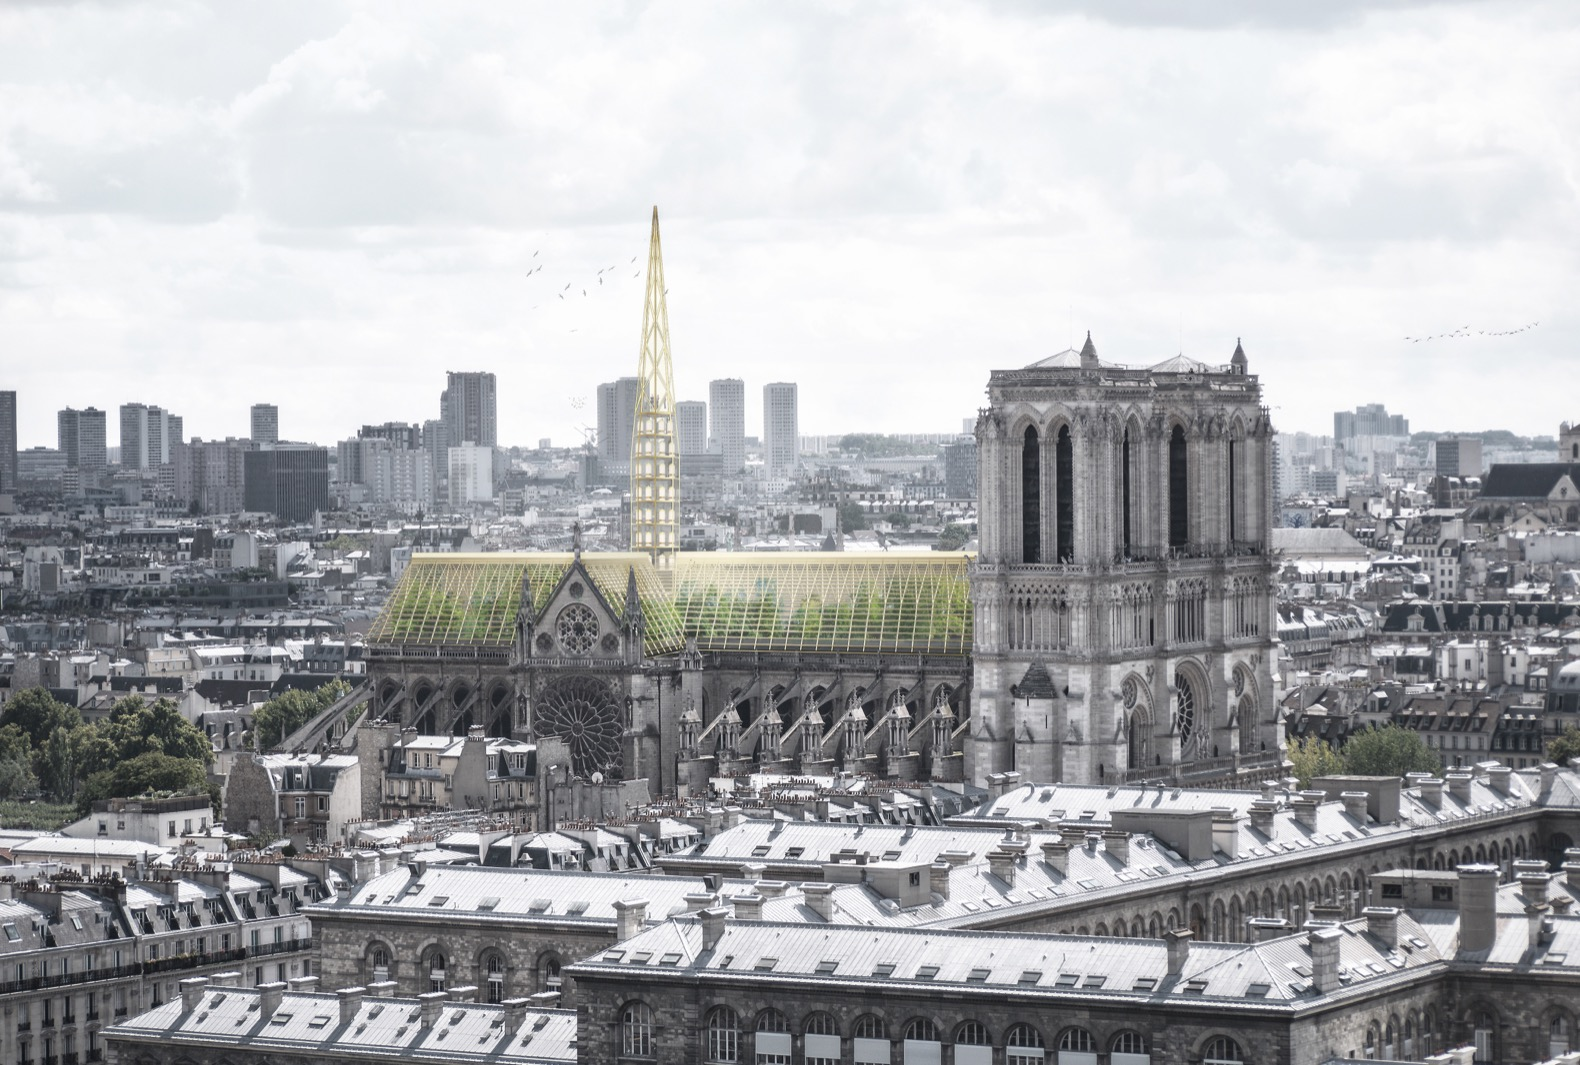 Studio NAB proposes rebuilding Notre Dame with a greenhouse and apiary